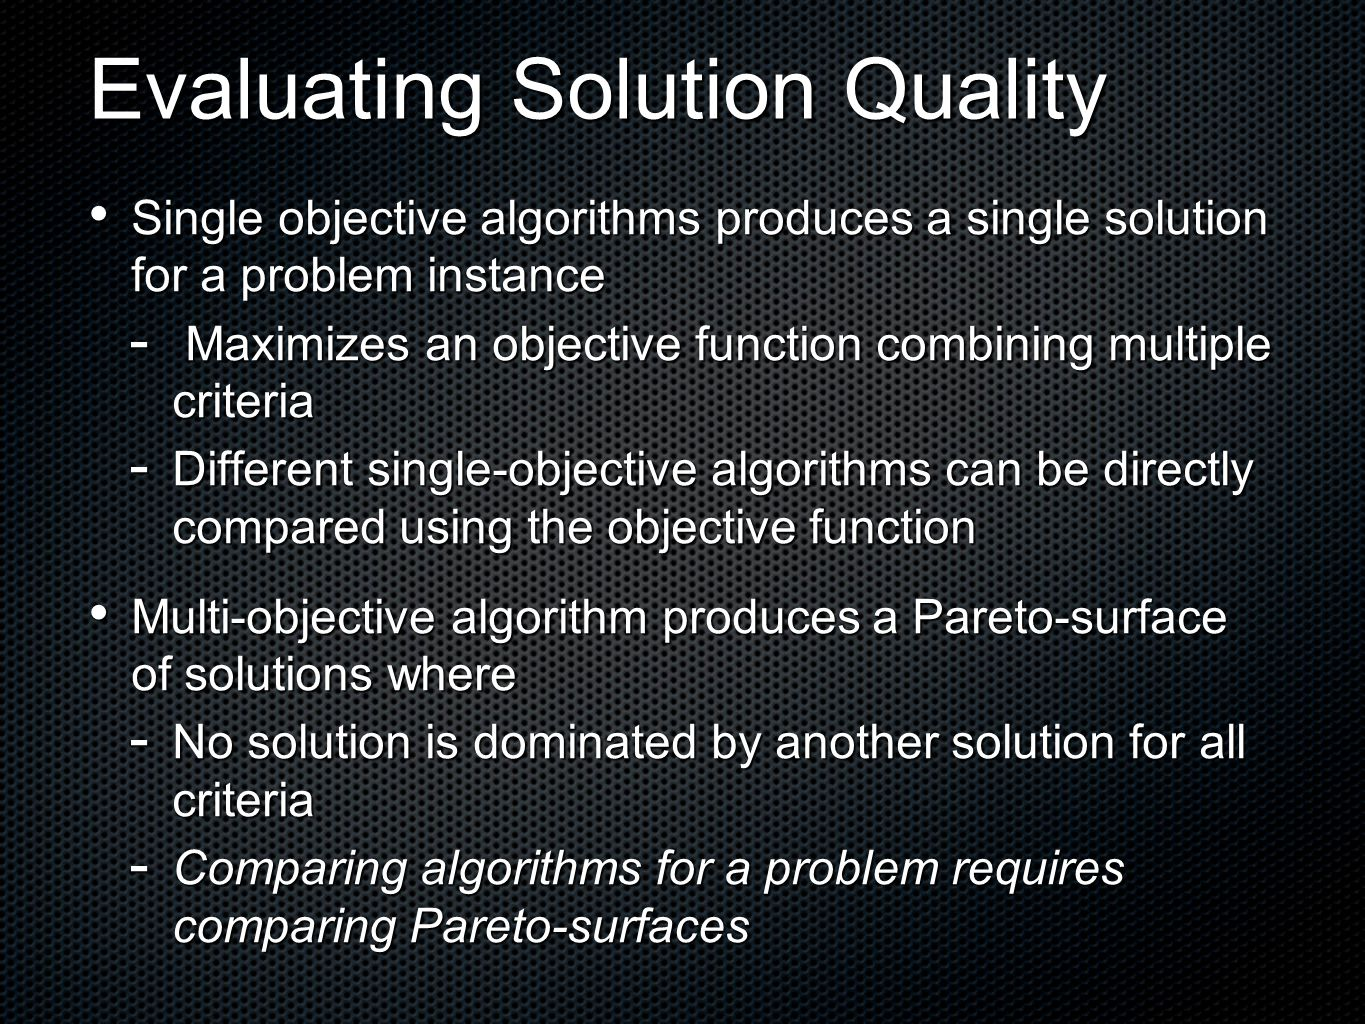 Evaluating Solution Quality Single objective algorithms produces a single solution for a problem instance Single objective algorithms produces a single solution for a problem instance  Maximizes an objective function combining multiple criteria  Different single-objective algorithms can be directly compared using the objective function Multi-objective algorithm produces a Pareto-surface of solutions where Multi-objective algorithm produces a Pareto-surface of solutions where  No solution is dominated by another solution for all criteria  Comparing algorithms for a problem requires comparing Pareto-surfaces